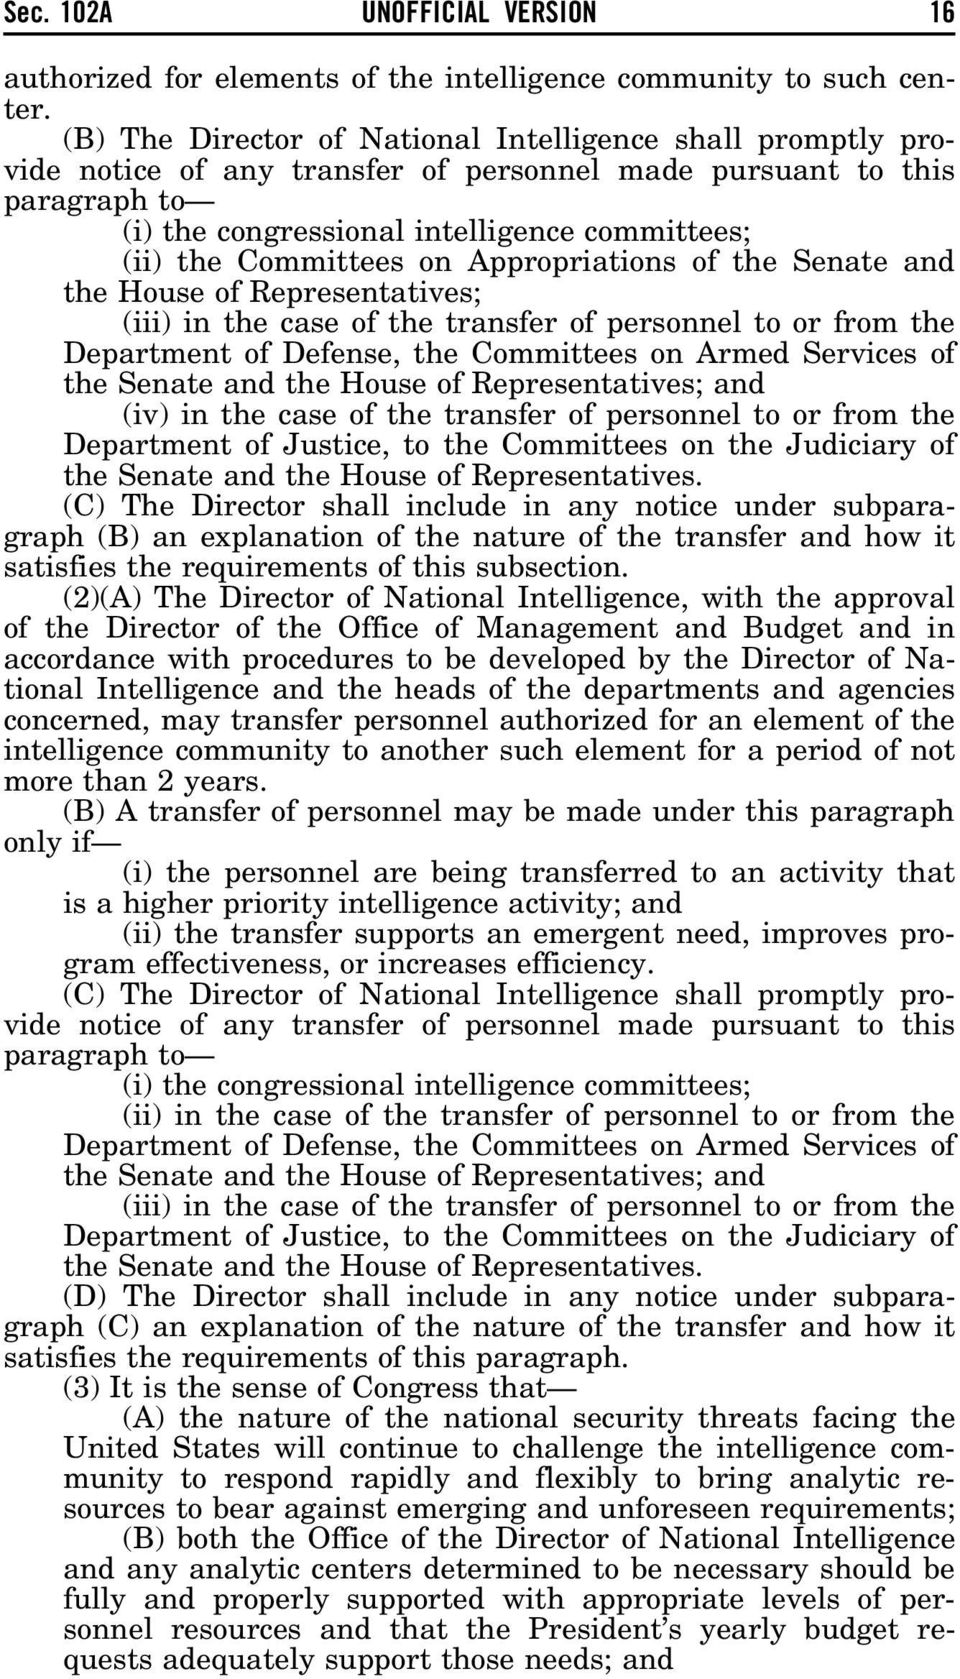 Committees on Appropriations of the Senate and the House of Representatives; (iii) in the case of the transfer of personnel to or from the Department of Defense, the Committees on Armed Services of